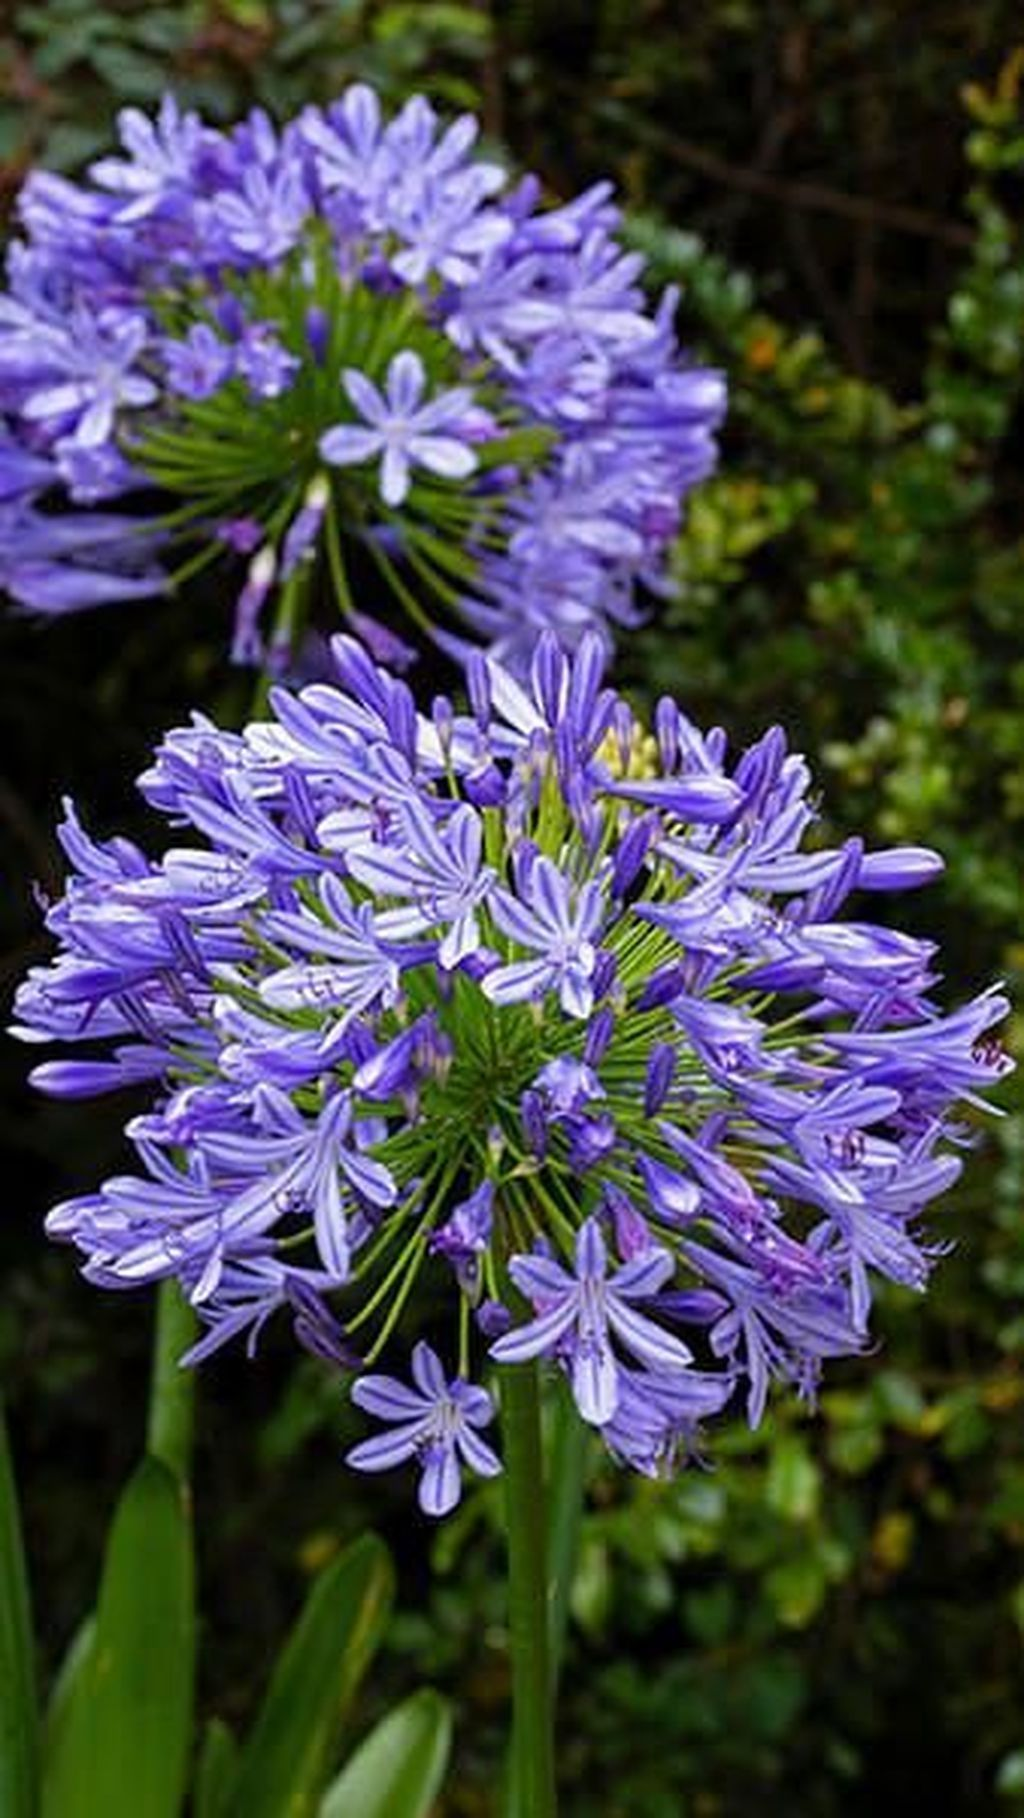 20 Stunning Spring Flower Garden Ideas With Perfect Lighting To Increase Your Design In 2020 Purple Flowers Garden Spring Garden Flowers Late Summer Flowers